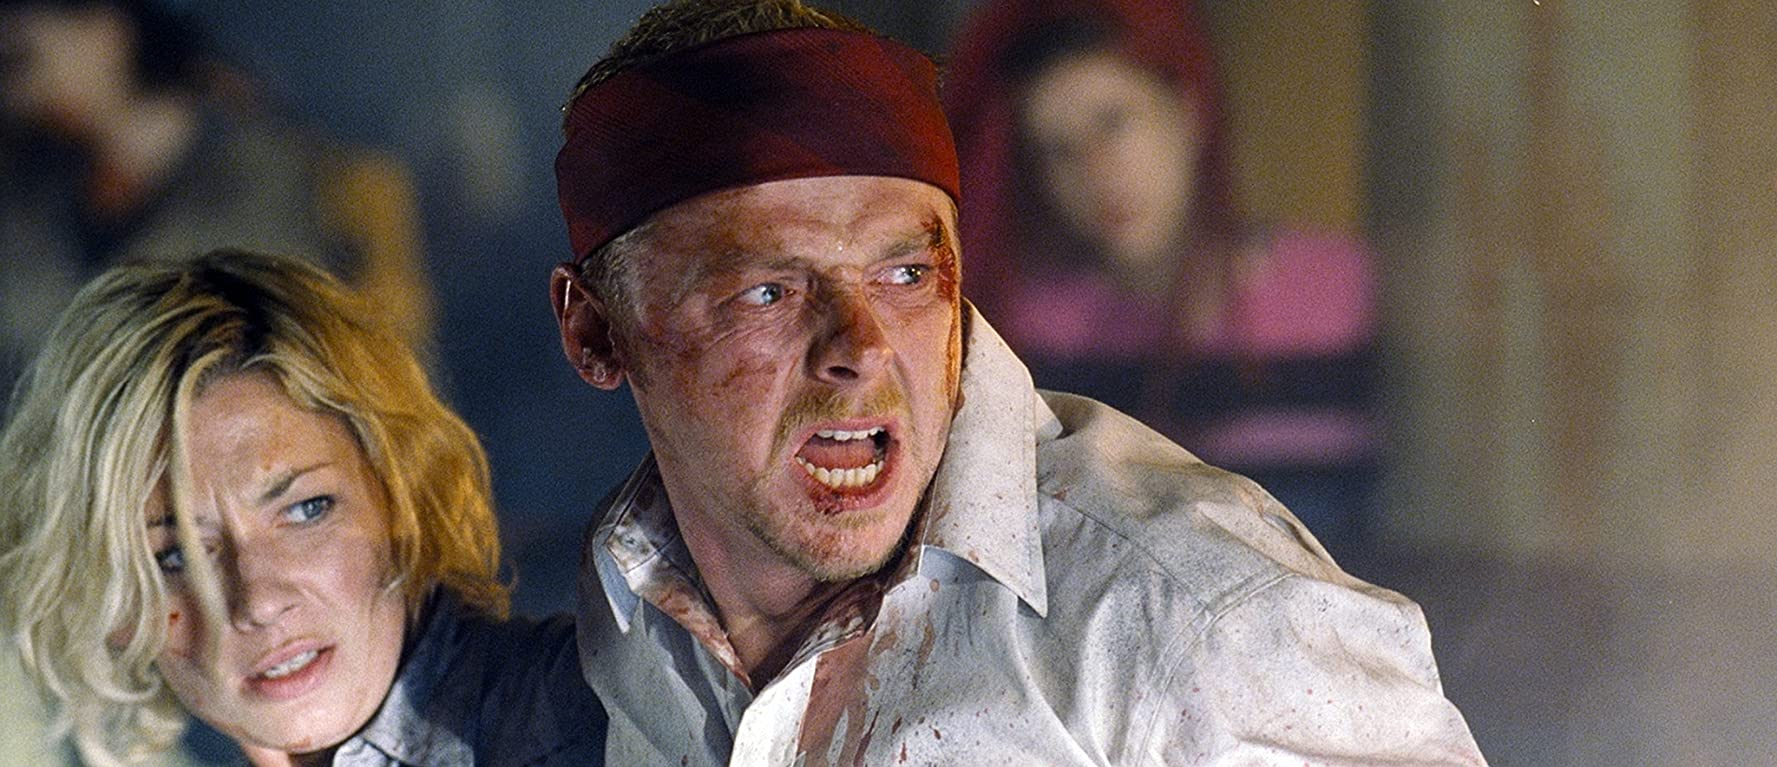 Kate Ashfield and Simon Pegg in Shaun of the Dead (2004)